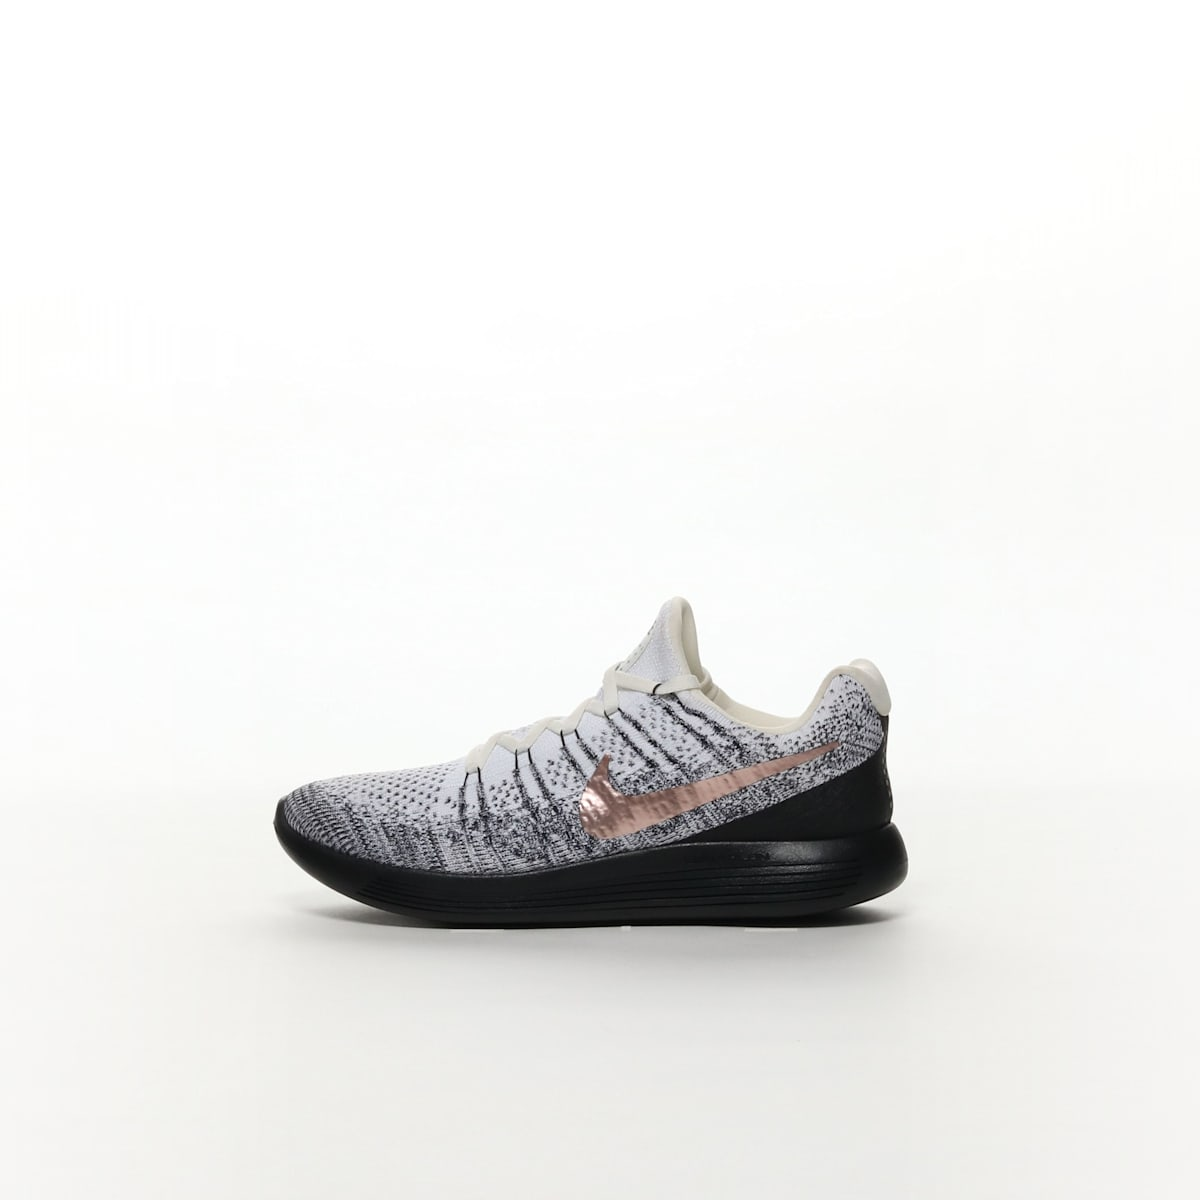 new style fa440 d8395 Nike LunarEpic Low Flyknit 2 X-Plore Running ...